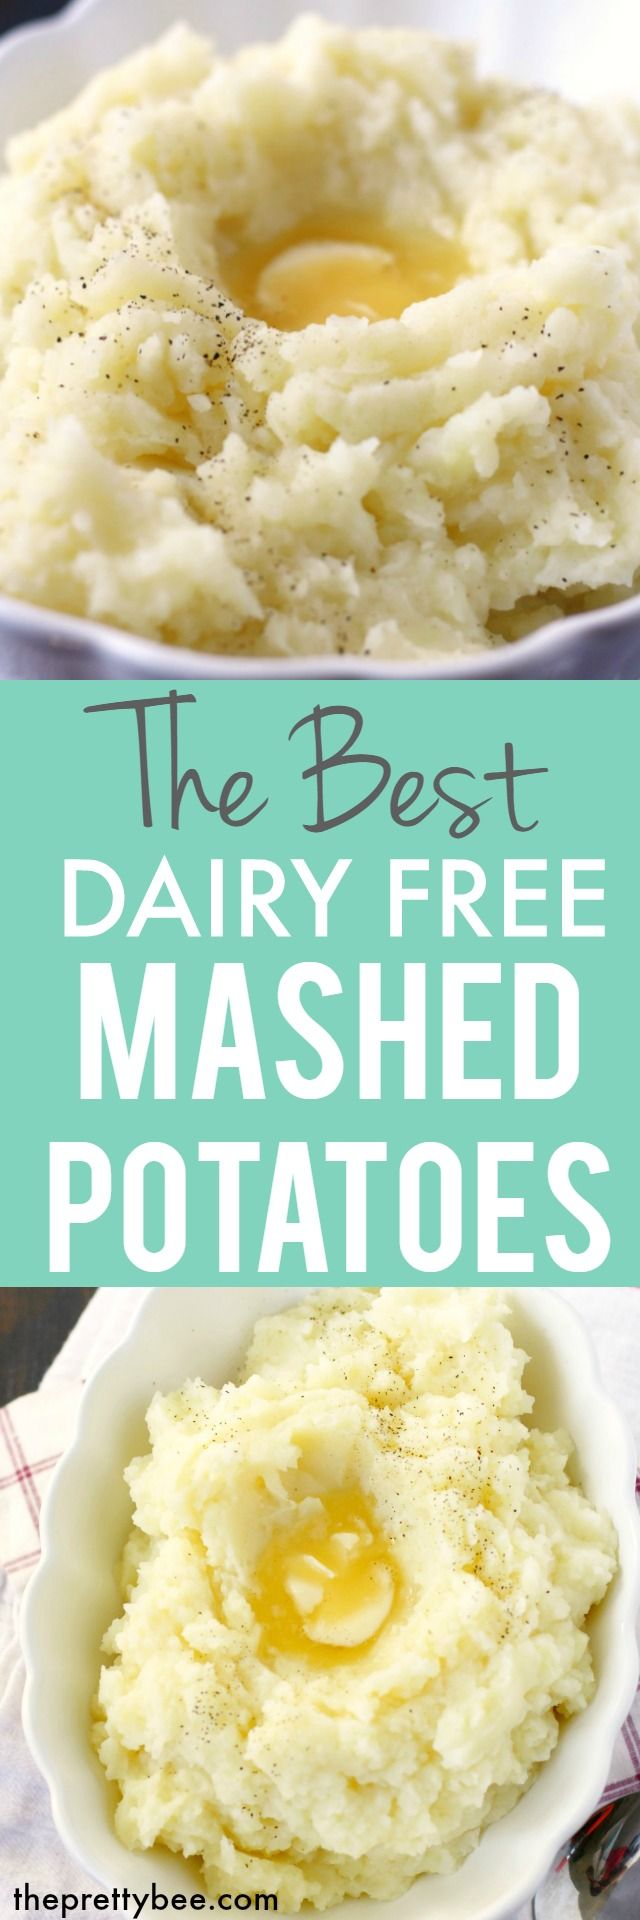 The best dairy free mashed potatoes - these are buttery, fluffy, and delicious!